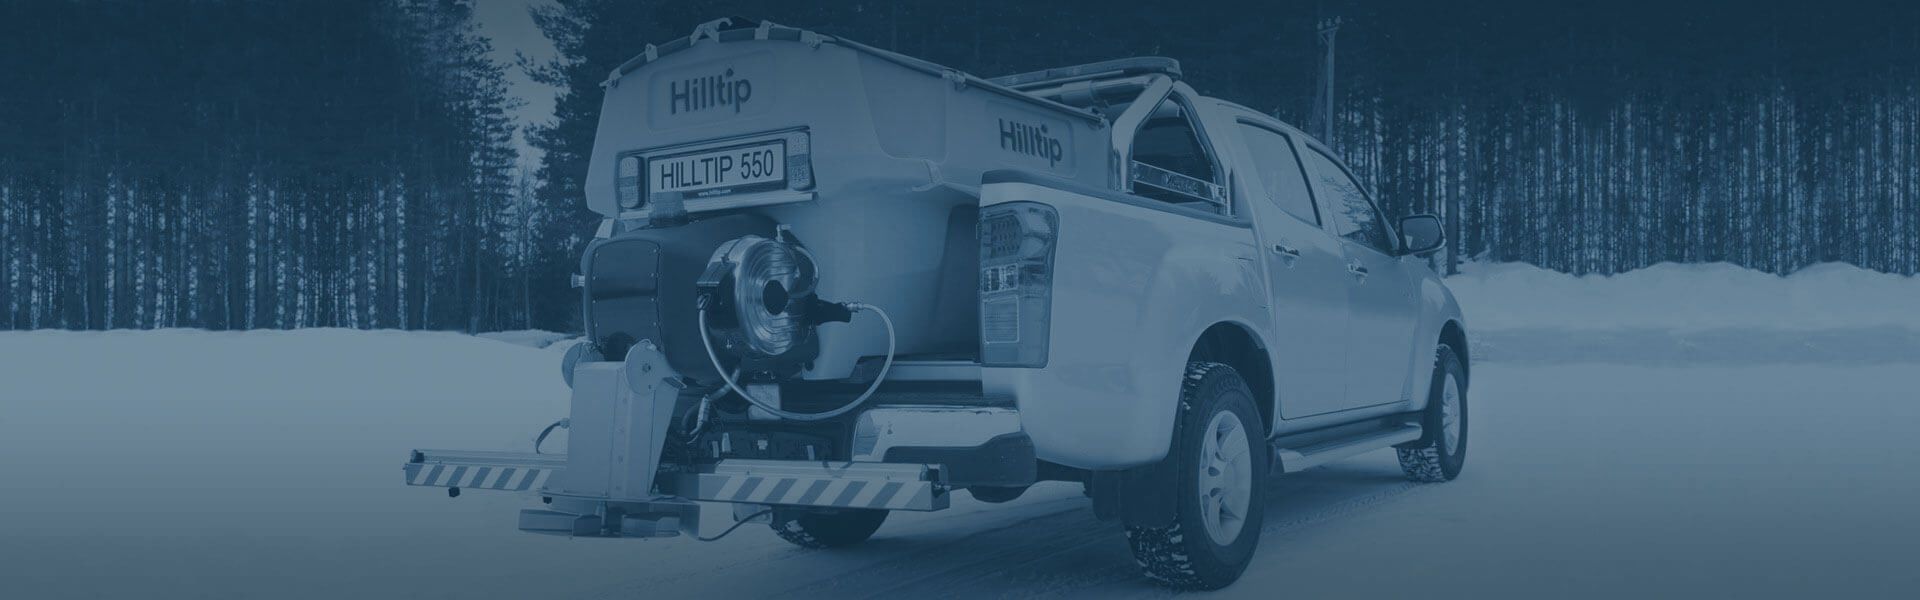 Hilltip Ice and Snow removal products